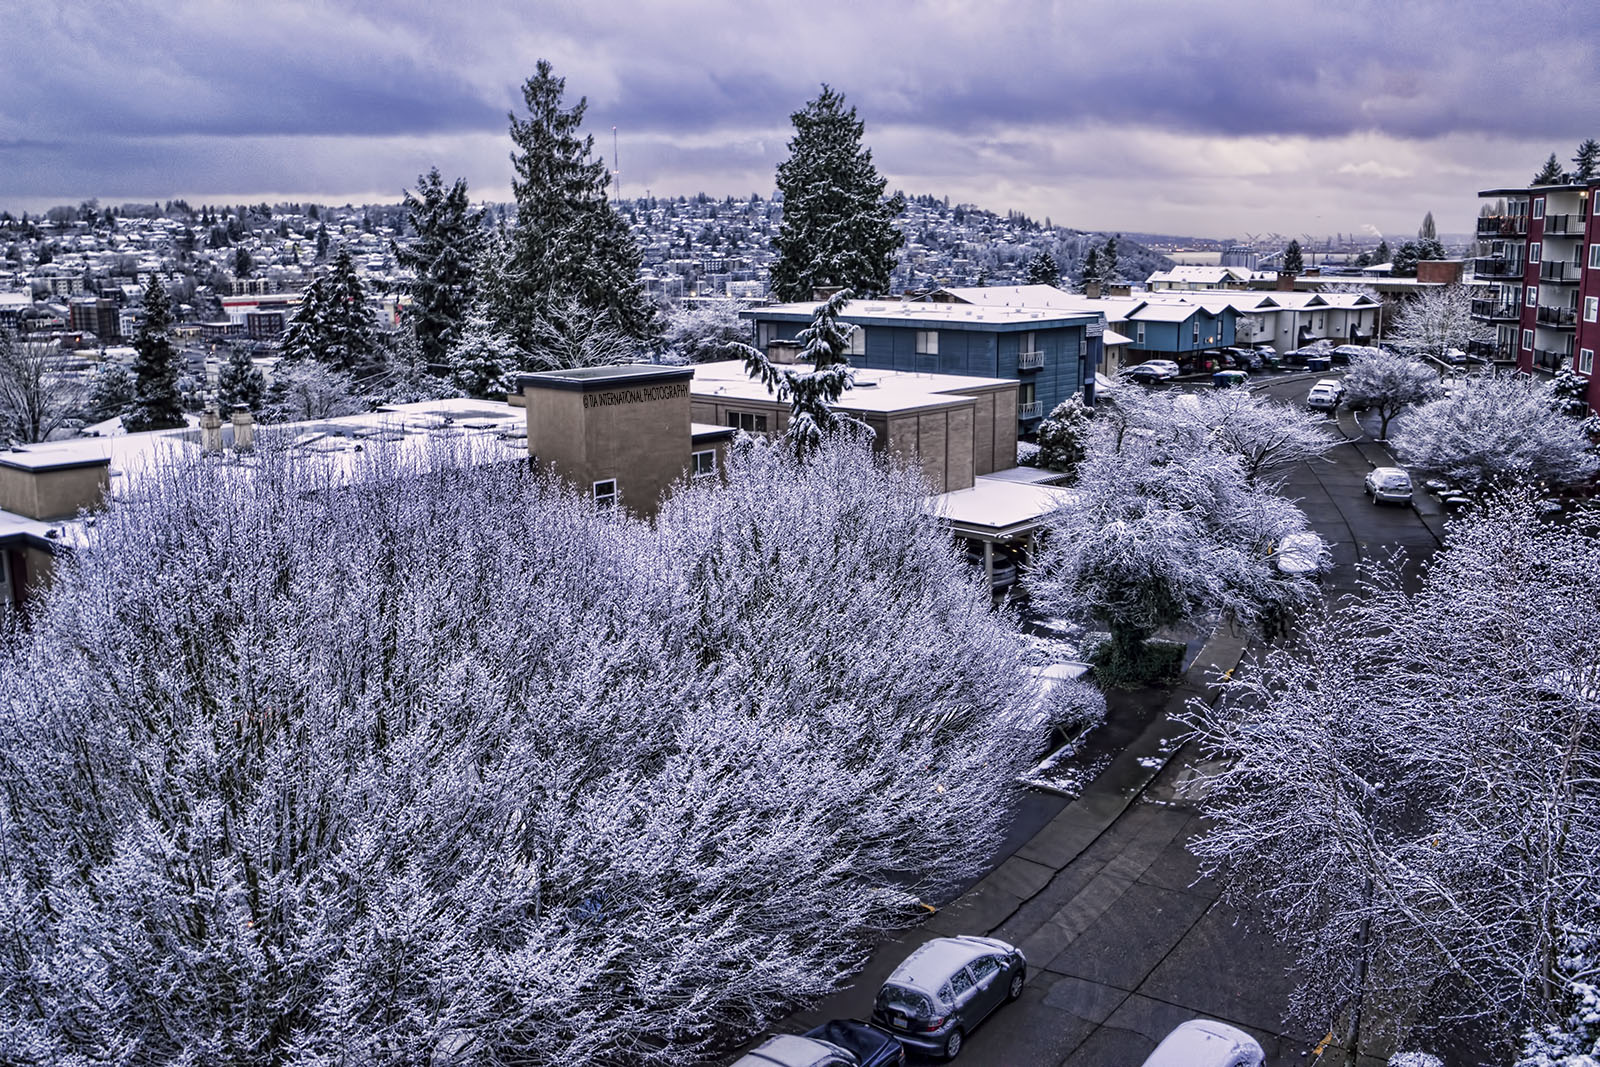 Magnolia & Queen Anne neighborhoods (Seattle) in the snow. (January 13, 2020).